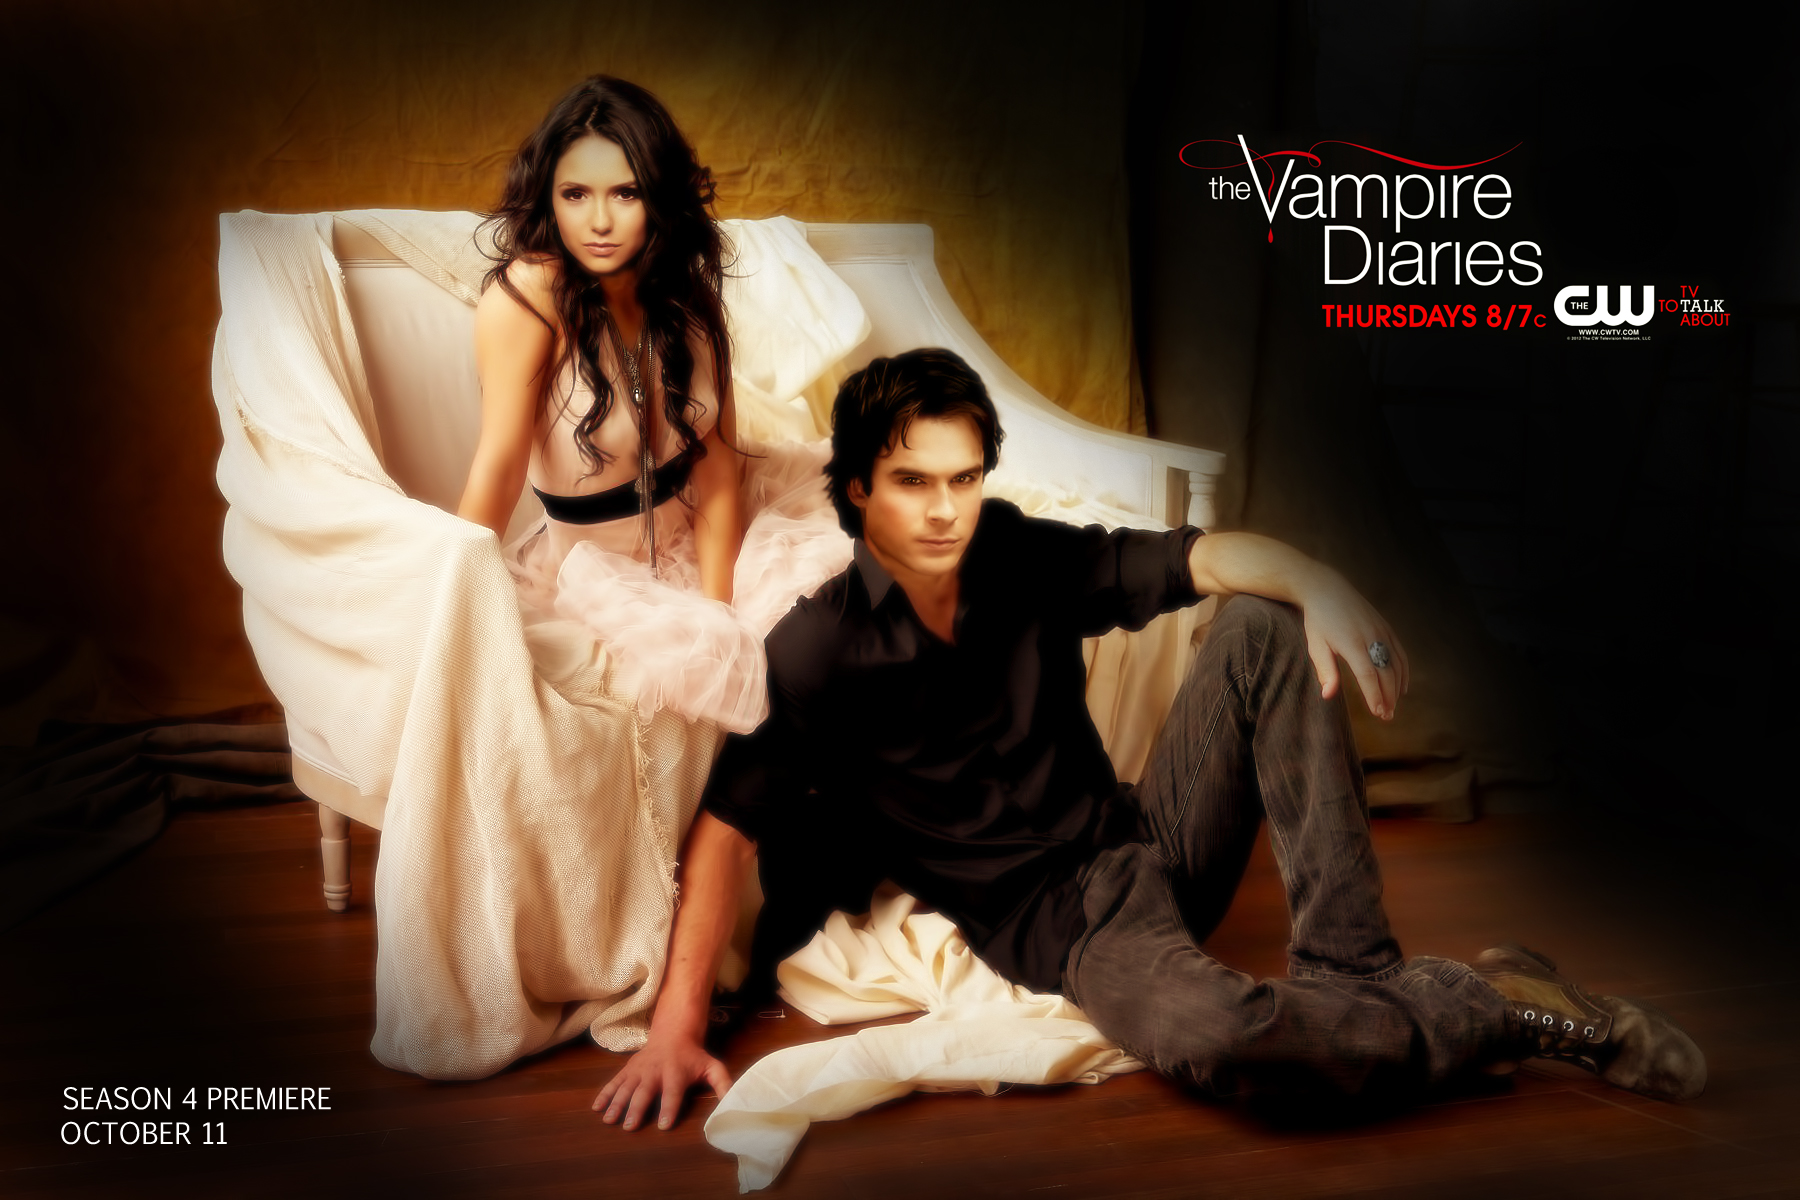 The Vampire Diaries The Vampire Diaries. Season 4